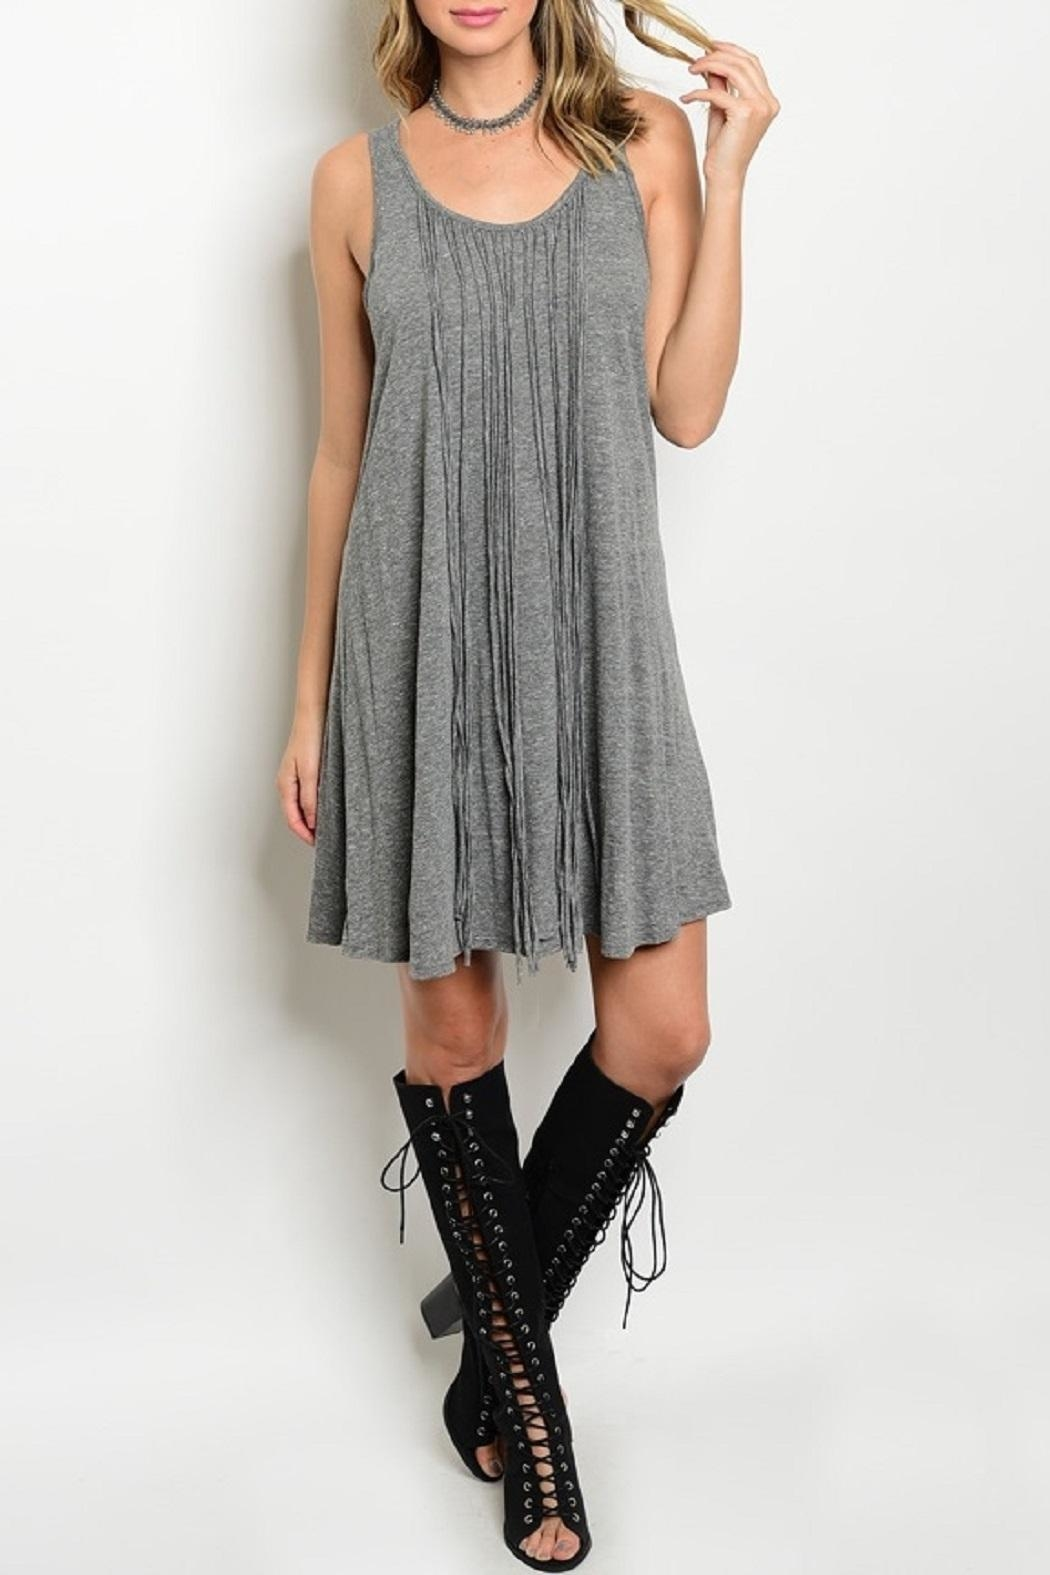 Adore Clothes & More Gray Fringe Dress - Main Image